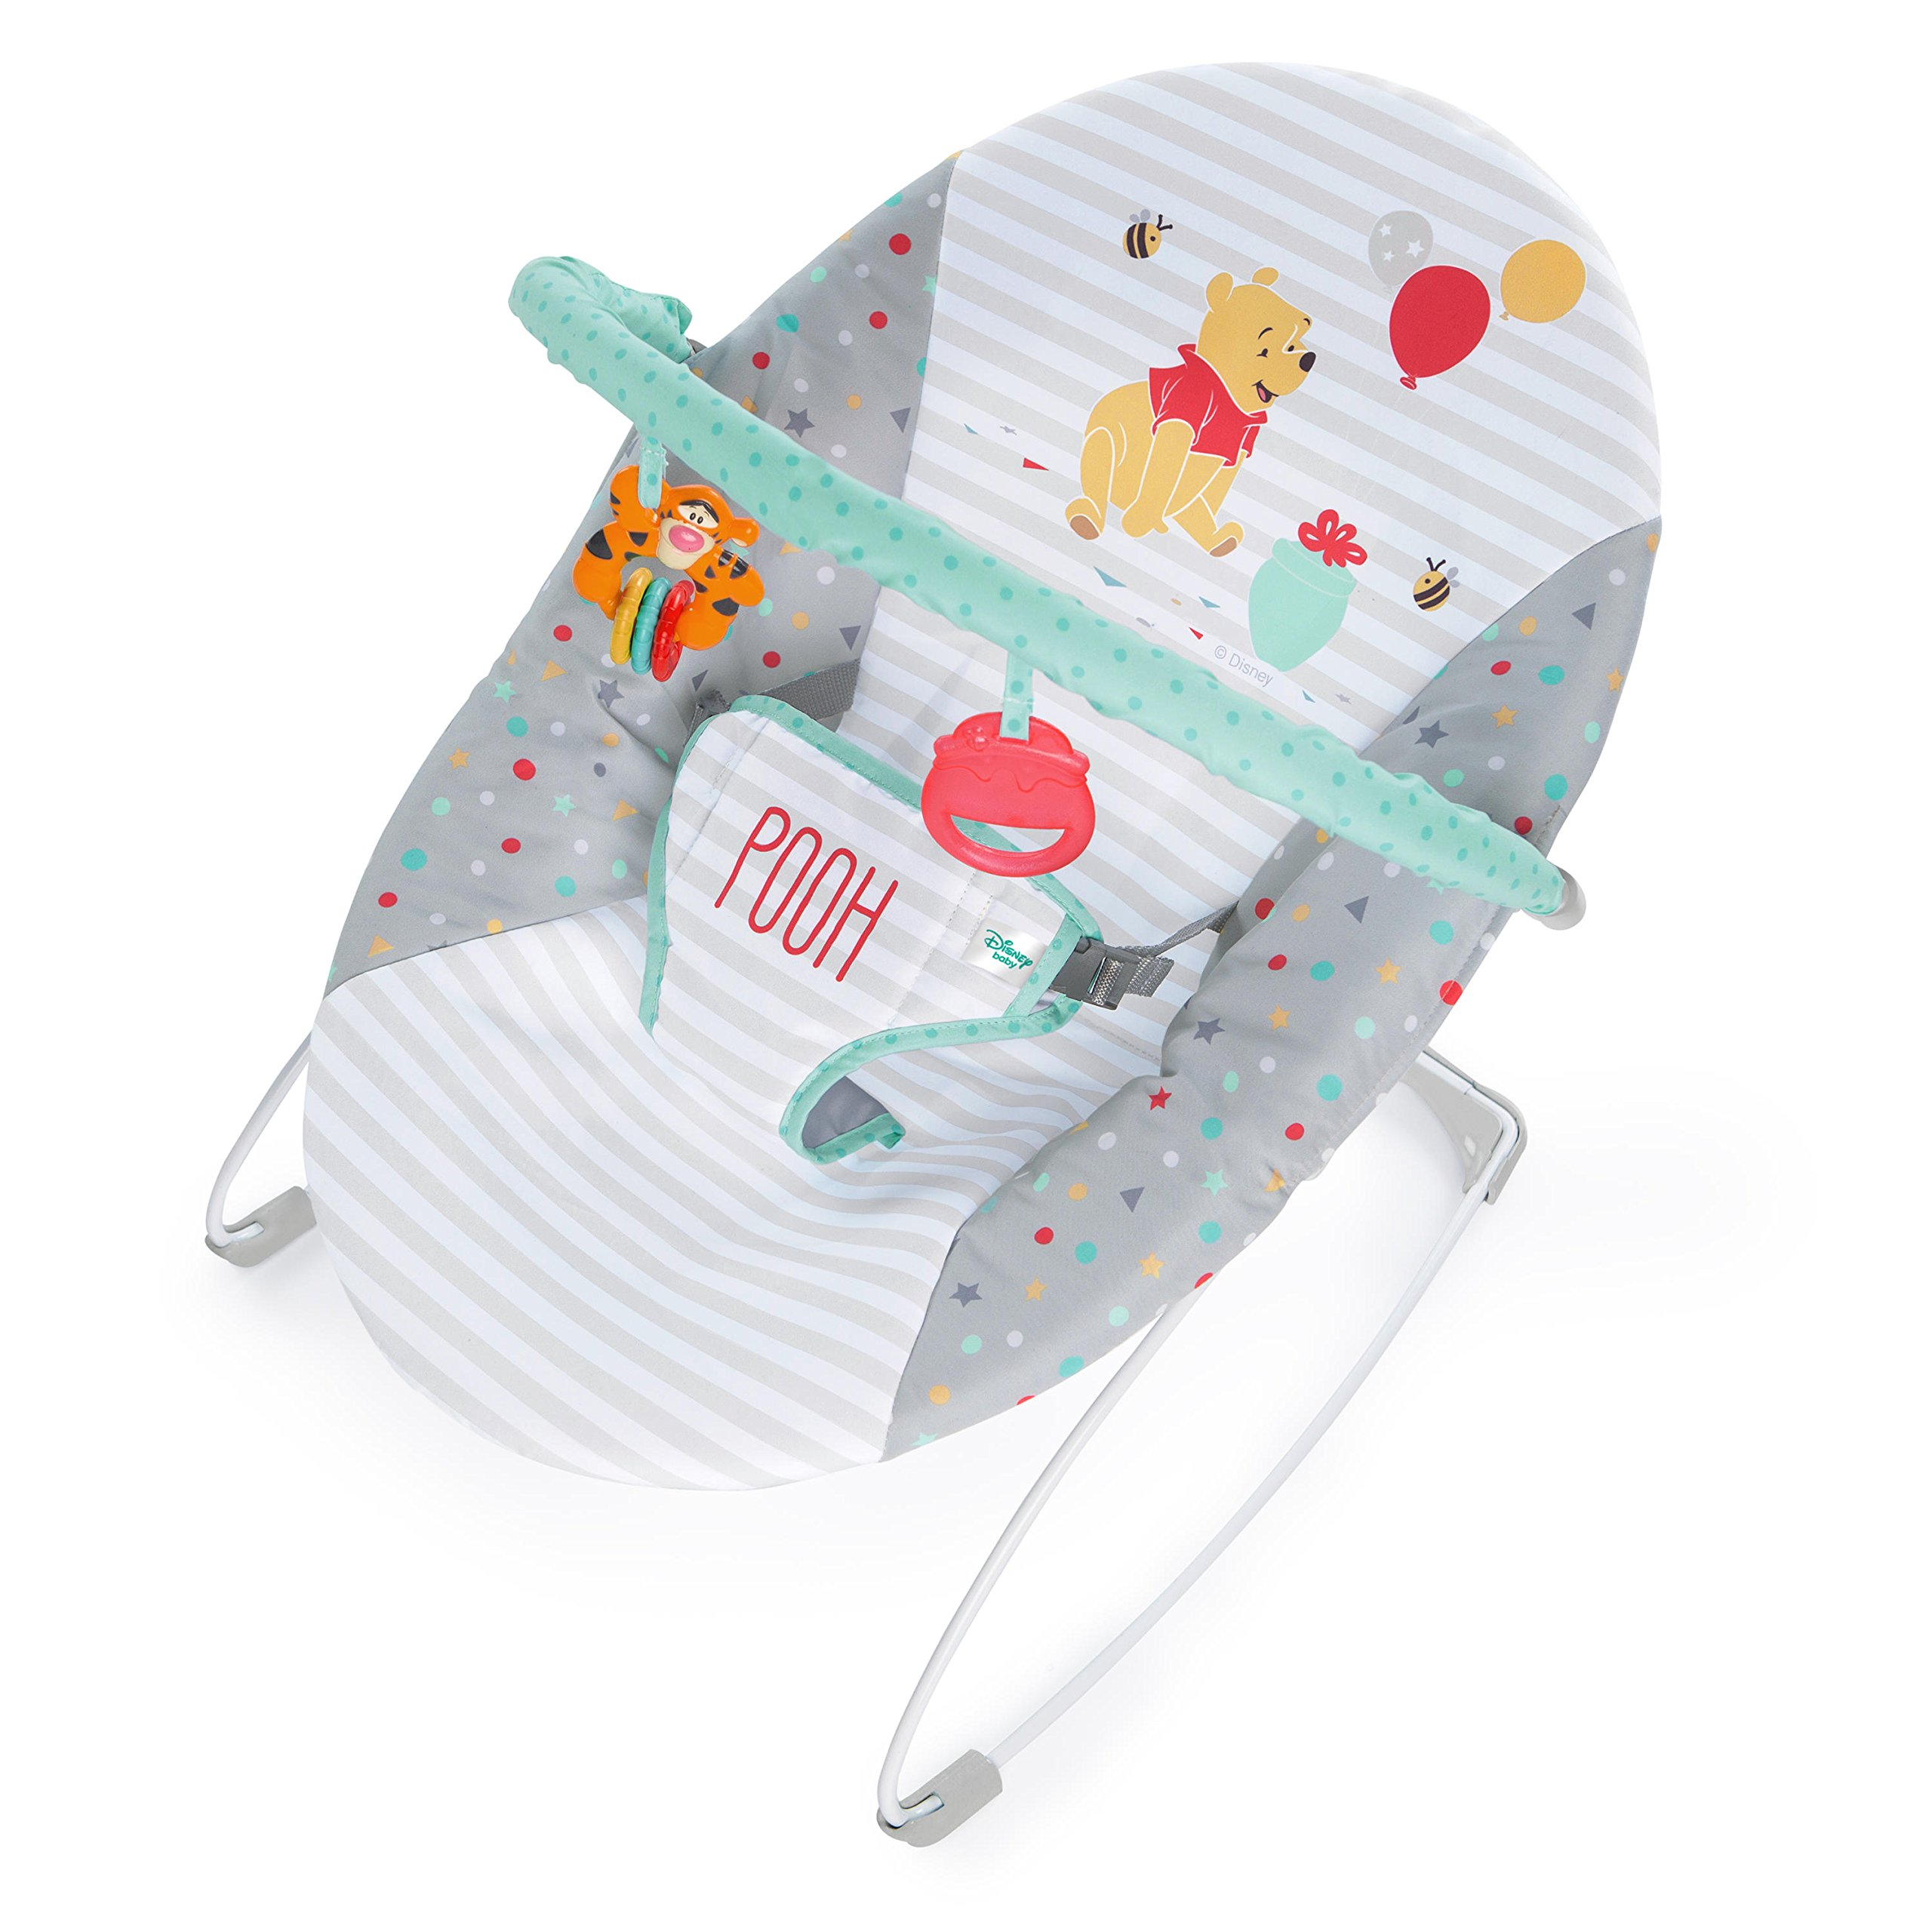 Disney Baby Happy Hoopla Vibrating Bouncer from Bright Starts